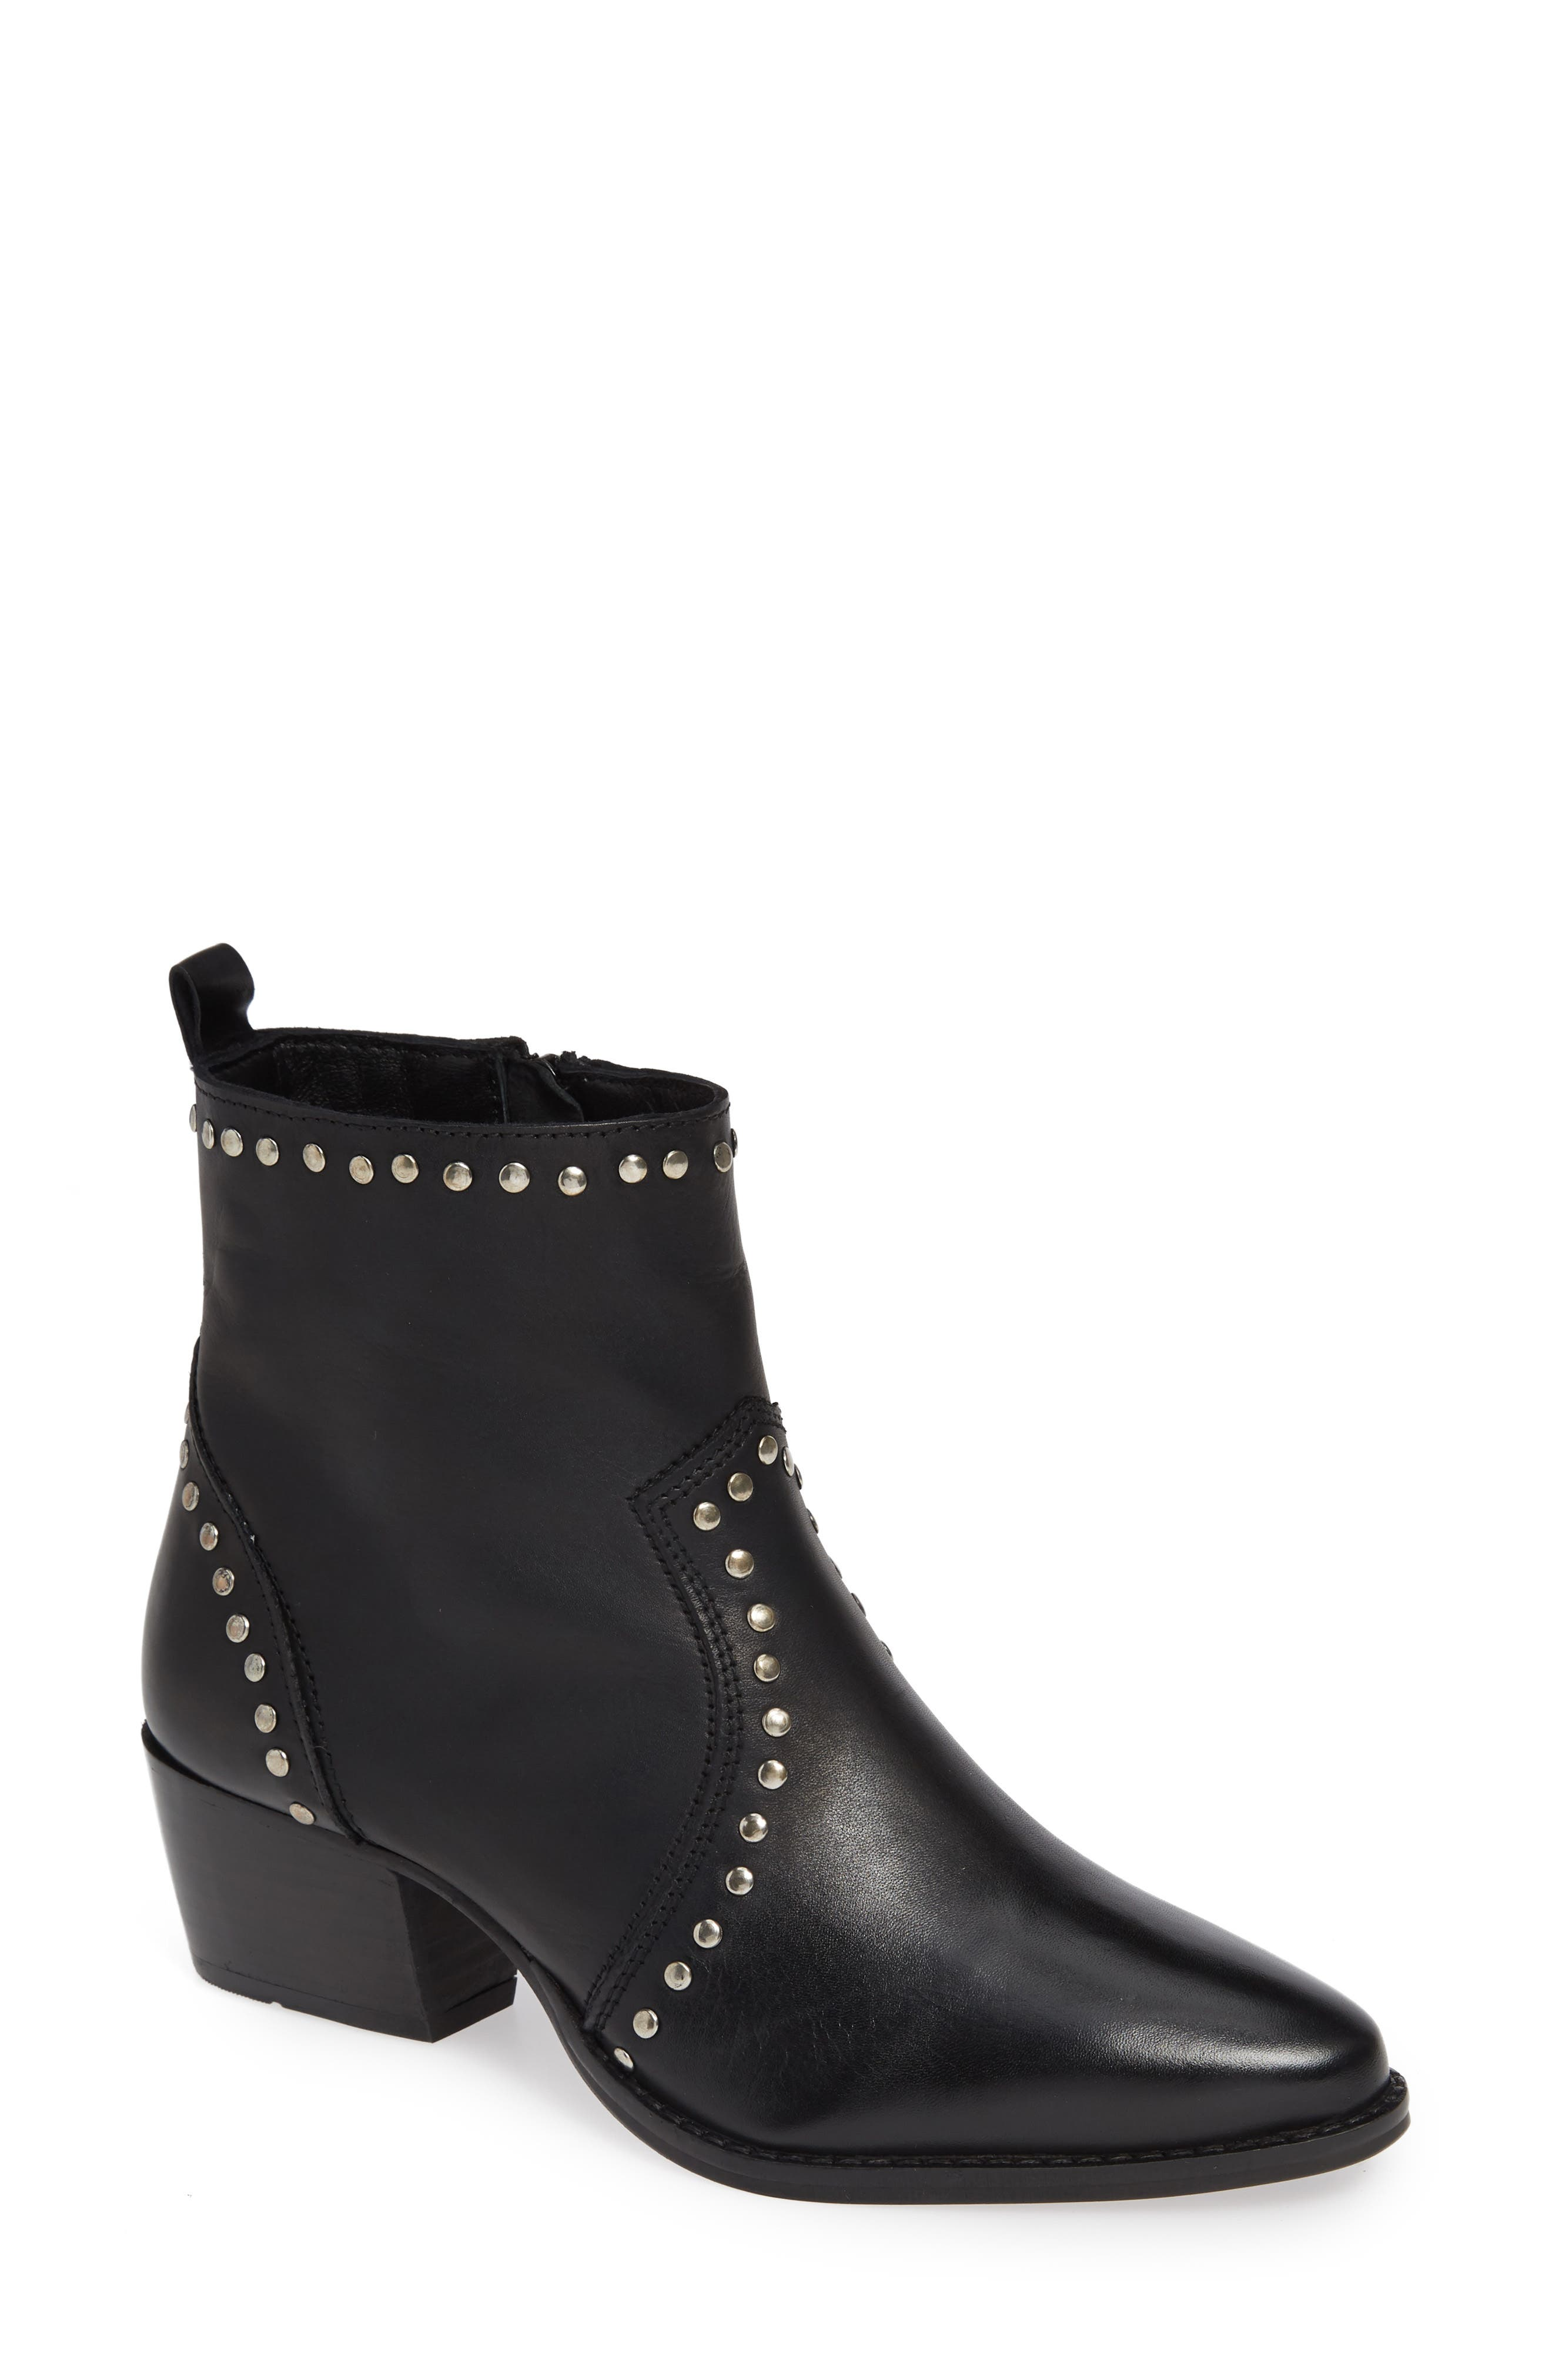 CHARLES BY CHARLES DAVID Zye Bootie, Main, color, BLACK LEATHER